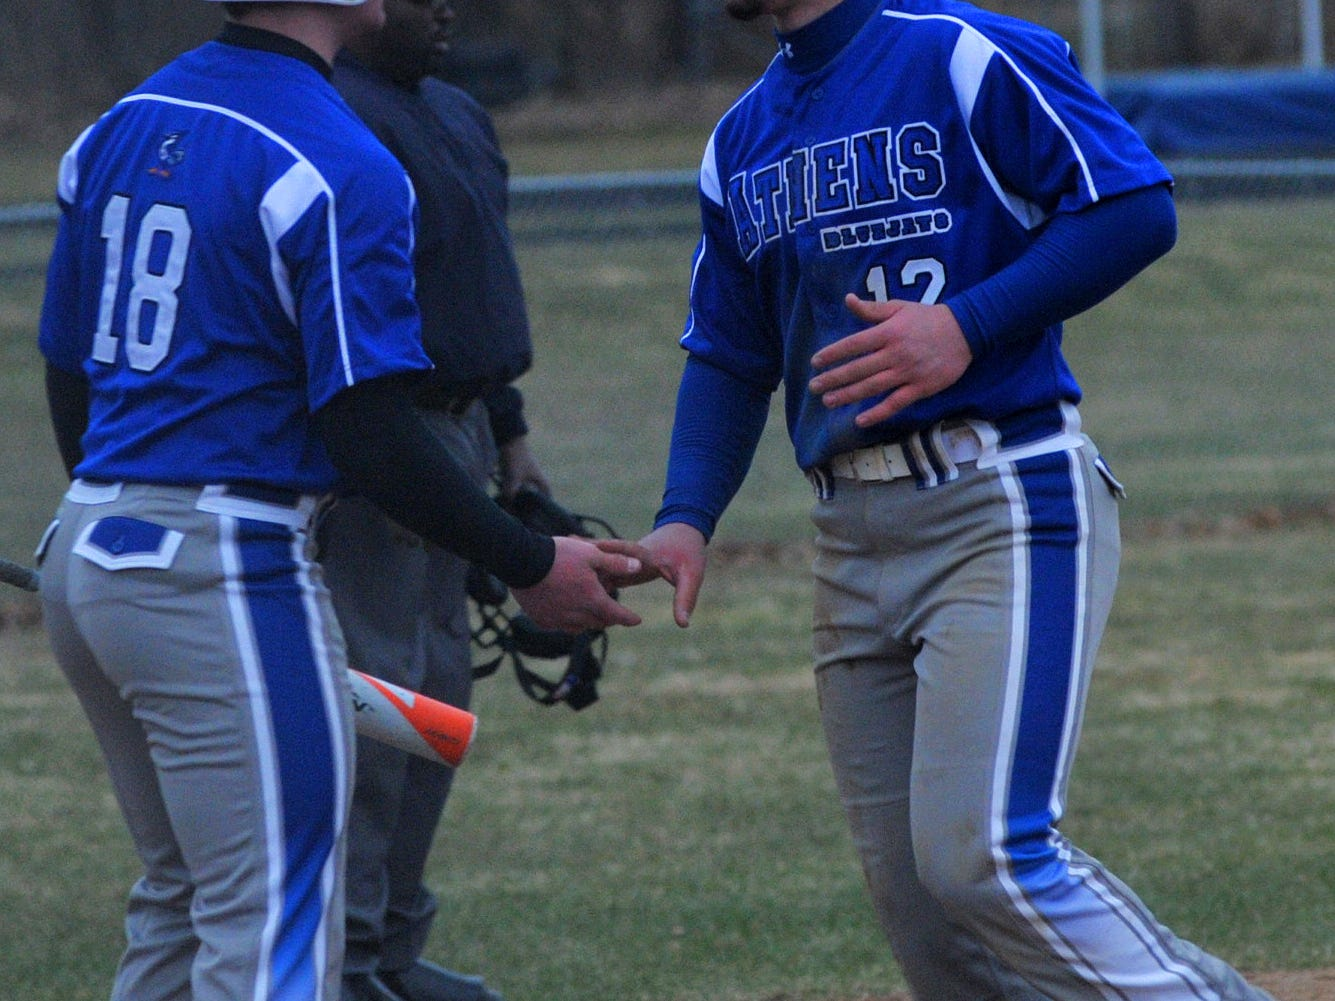 Athens' Lane Tessmer, right, is congratulated by teammate Max Stange after scoring a run in the fourth inning Tuesday against Chequamegon in Athens.